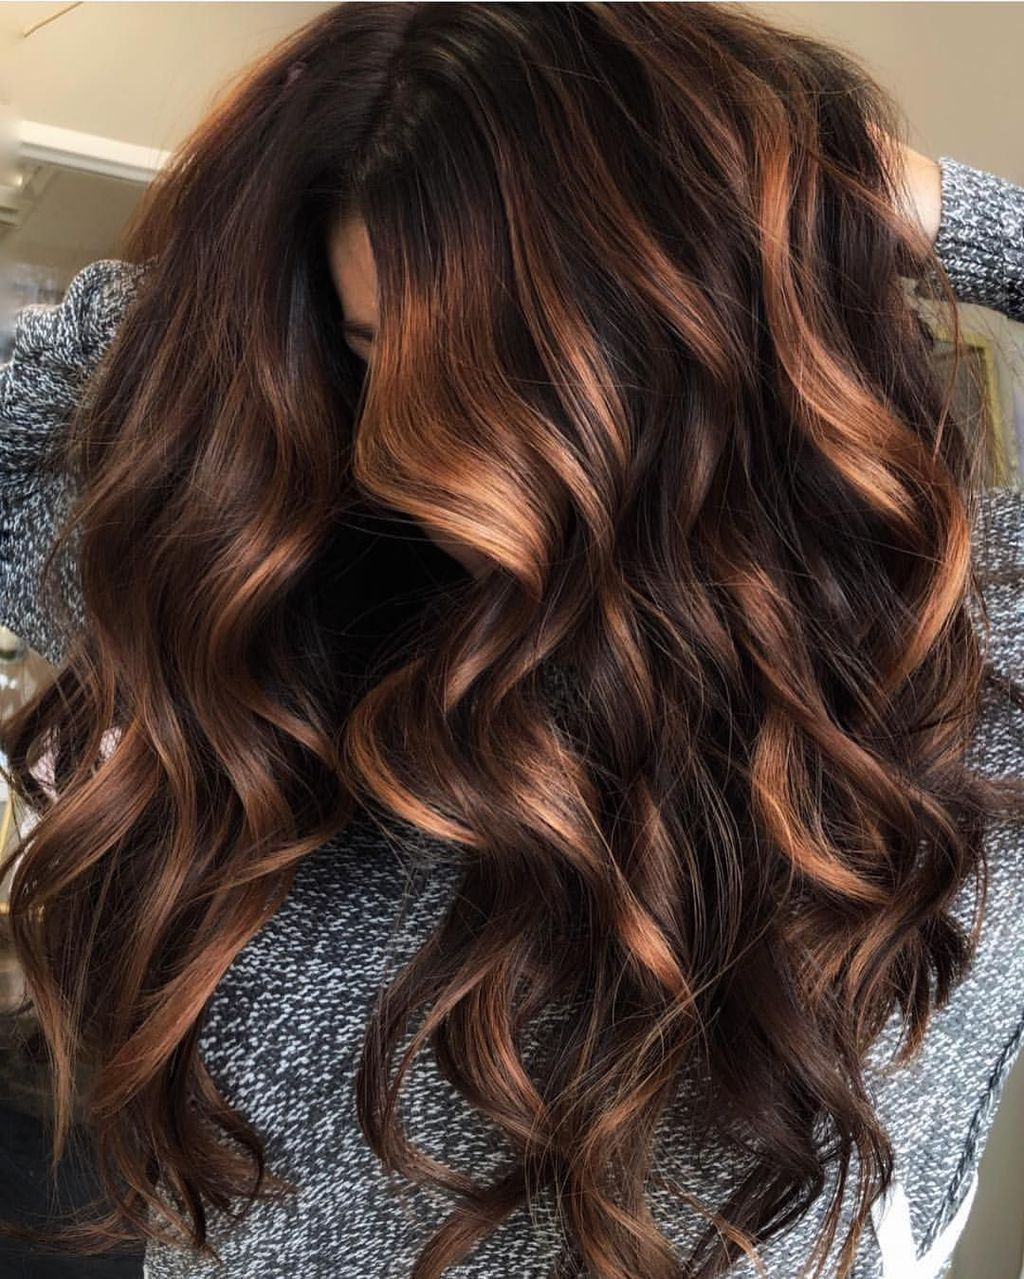 40 Beautiful Summer Hair Color Ideas For Brunettes Brunette Hair Color Summer Hair Color Hair Color Chocolate